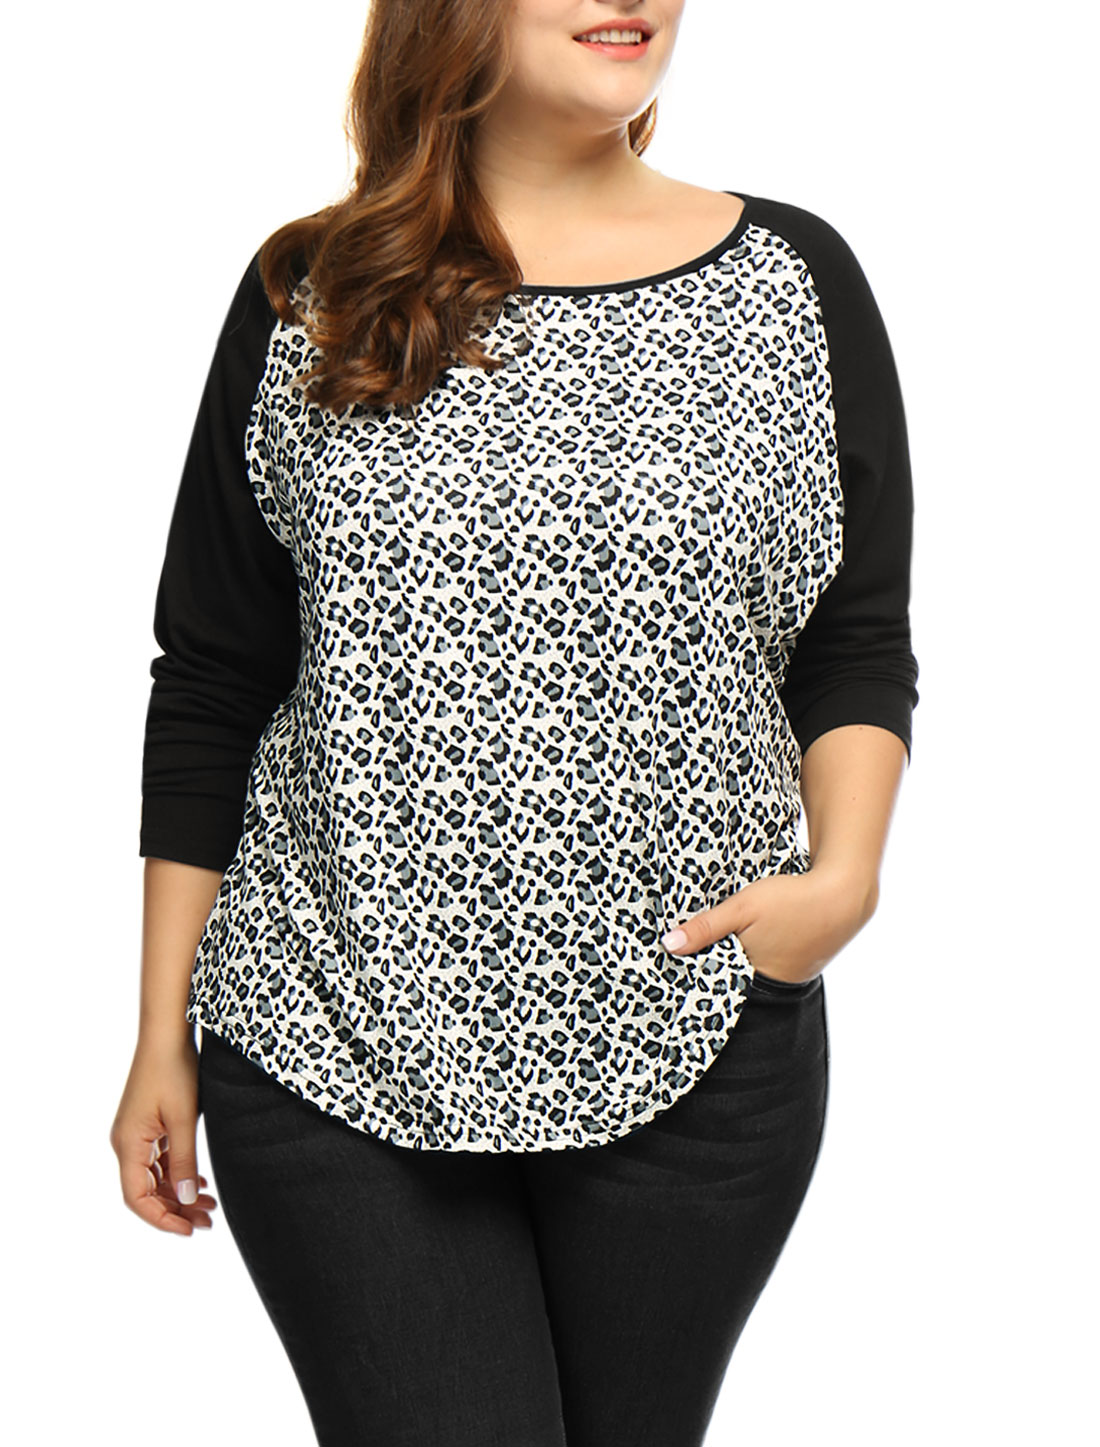 Women Plus Size Scoop Neck Leopard Print Raglan T-Shirt Black 1X